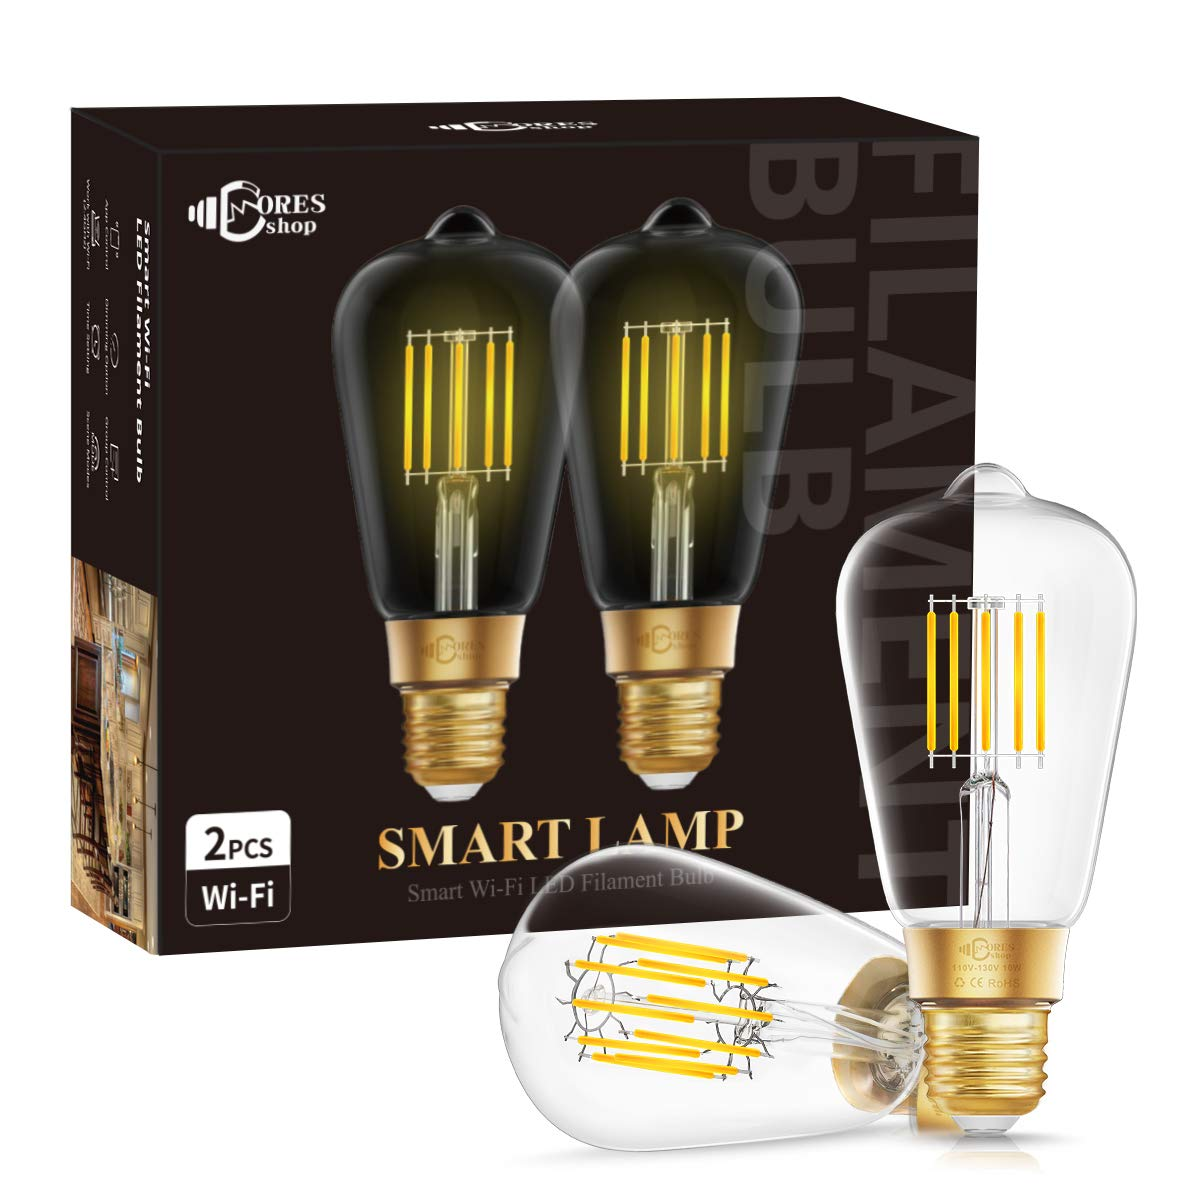 DORESshop Wi-Fi Dimmable Smart LED Light Bulb